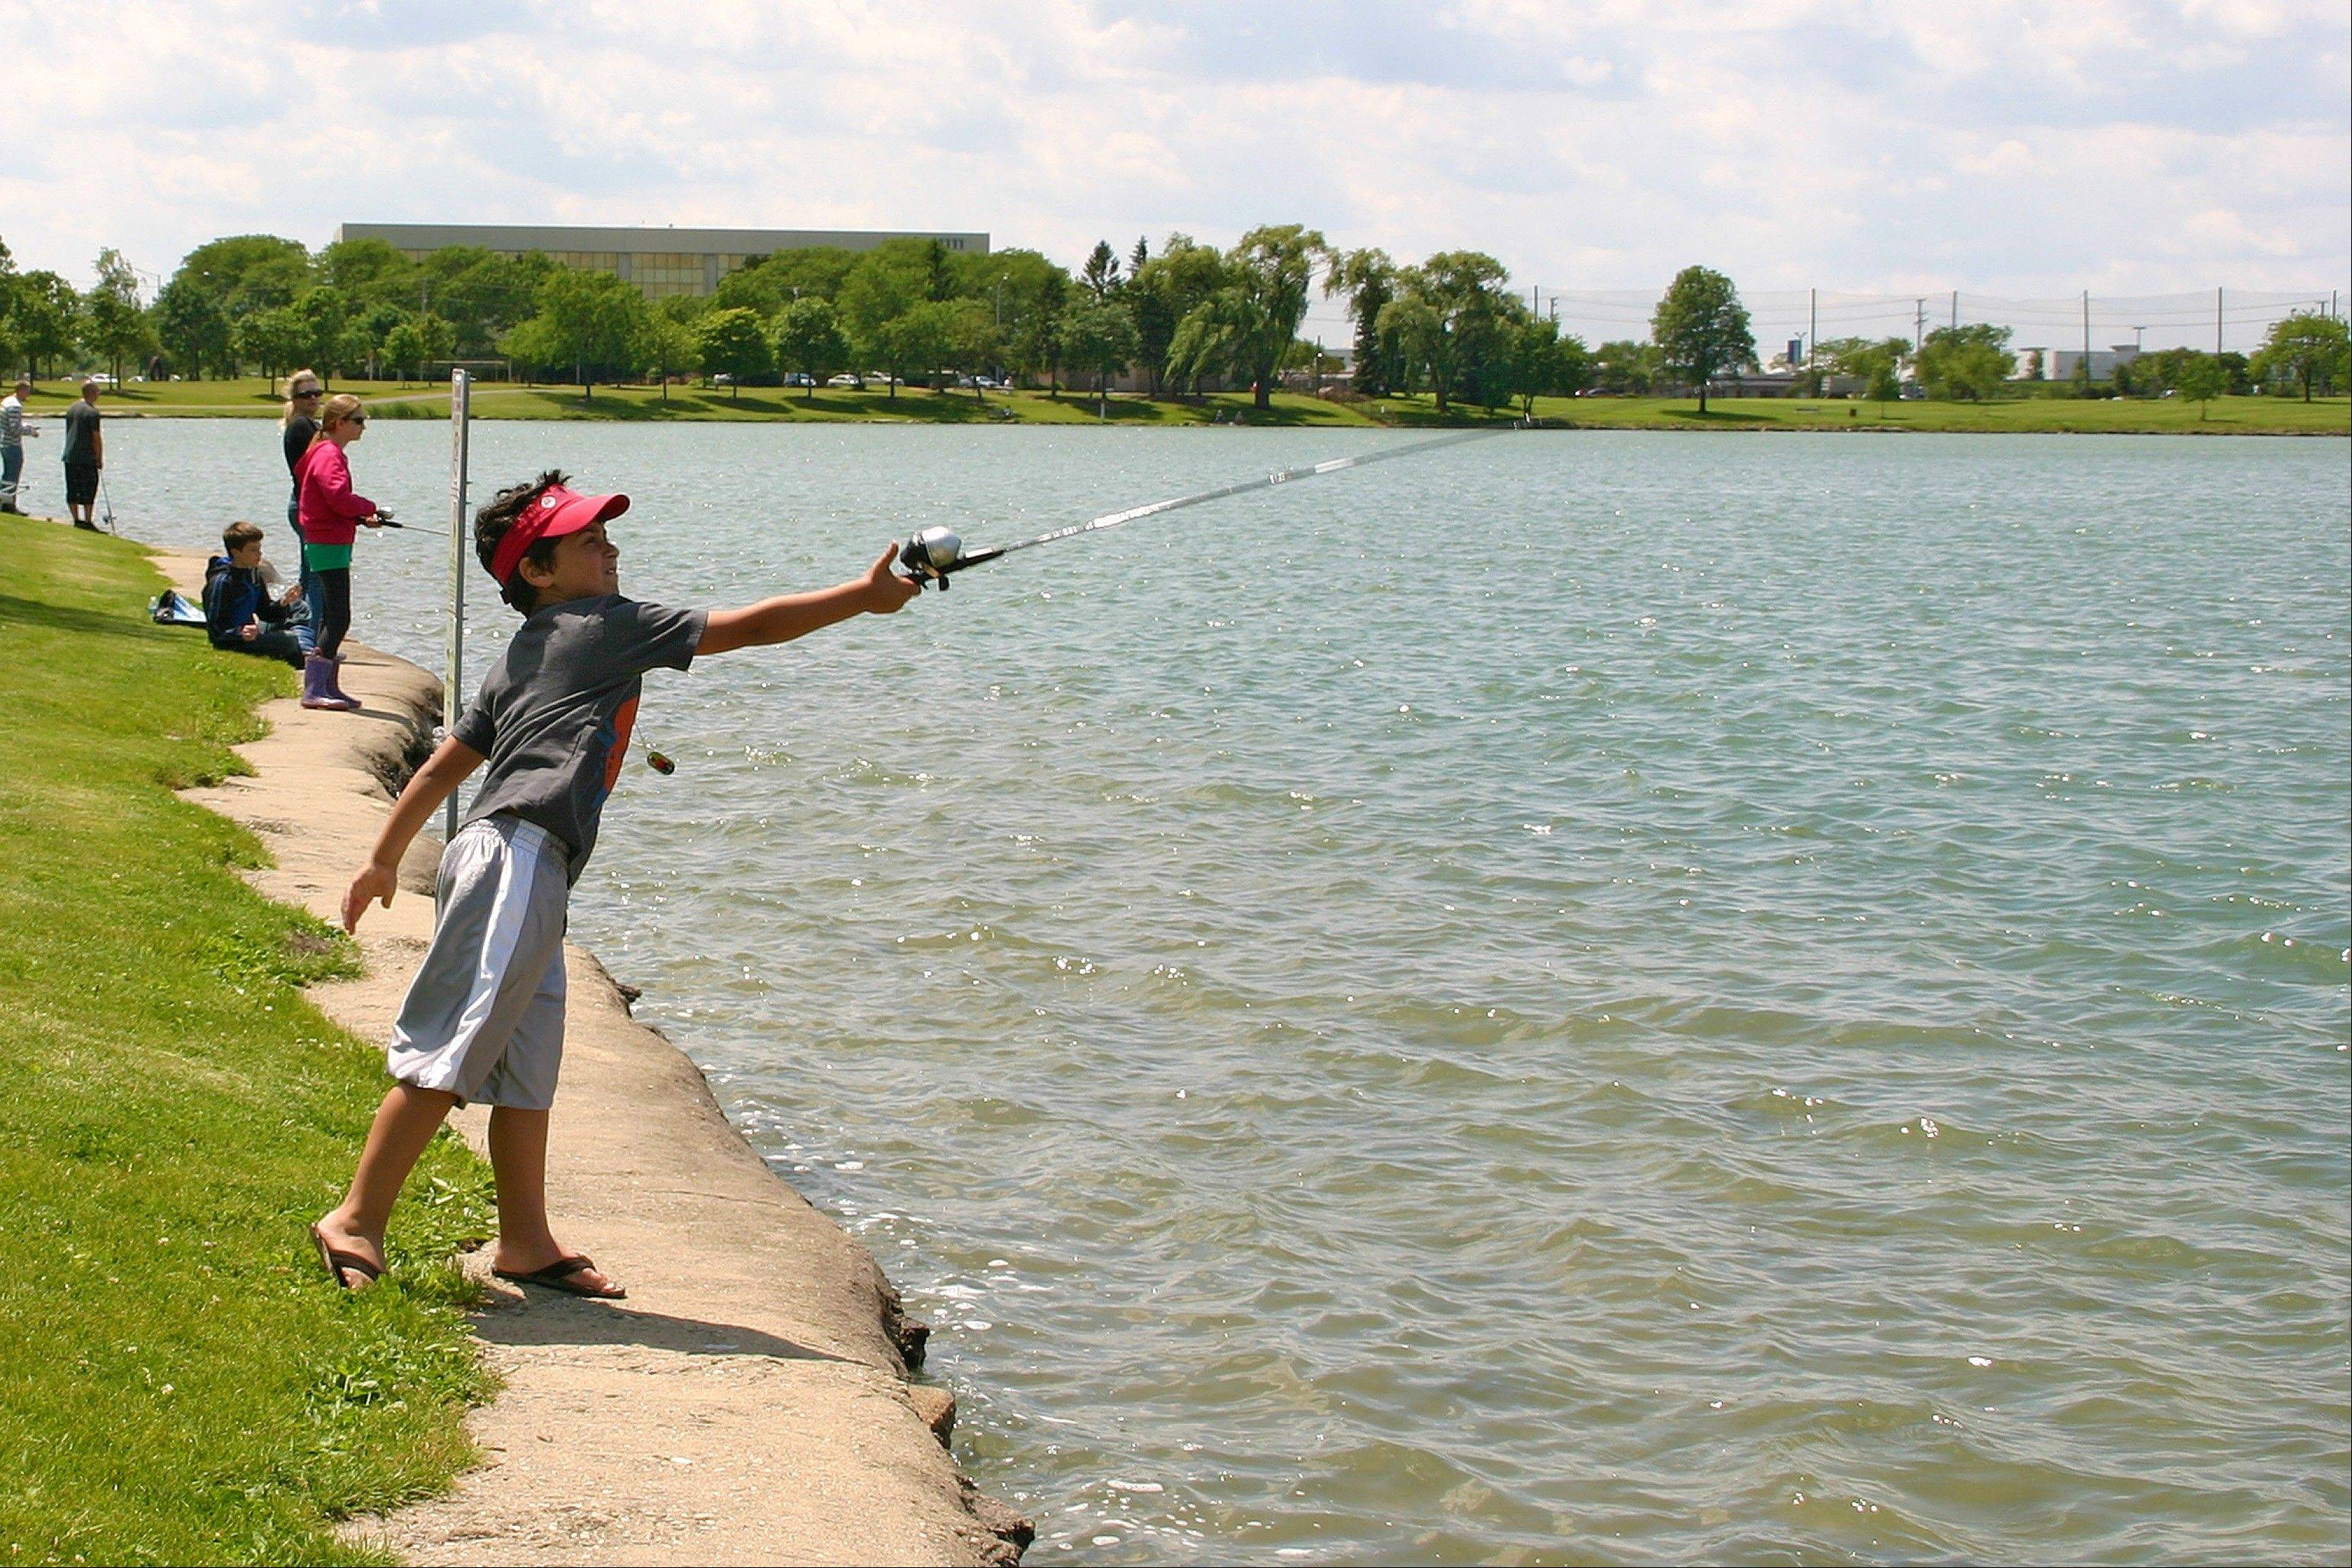 Dominic Fosco casts his line into Lake Opeka at the Des Plaines Optimist's Club free Fishing Derby on June 2.